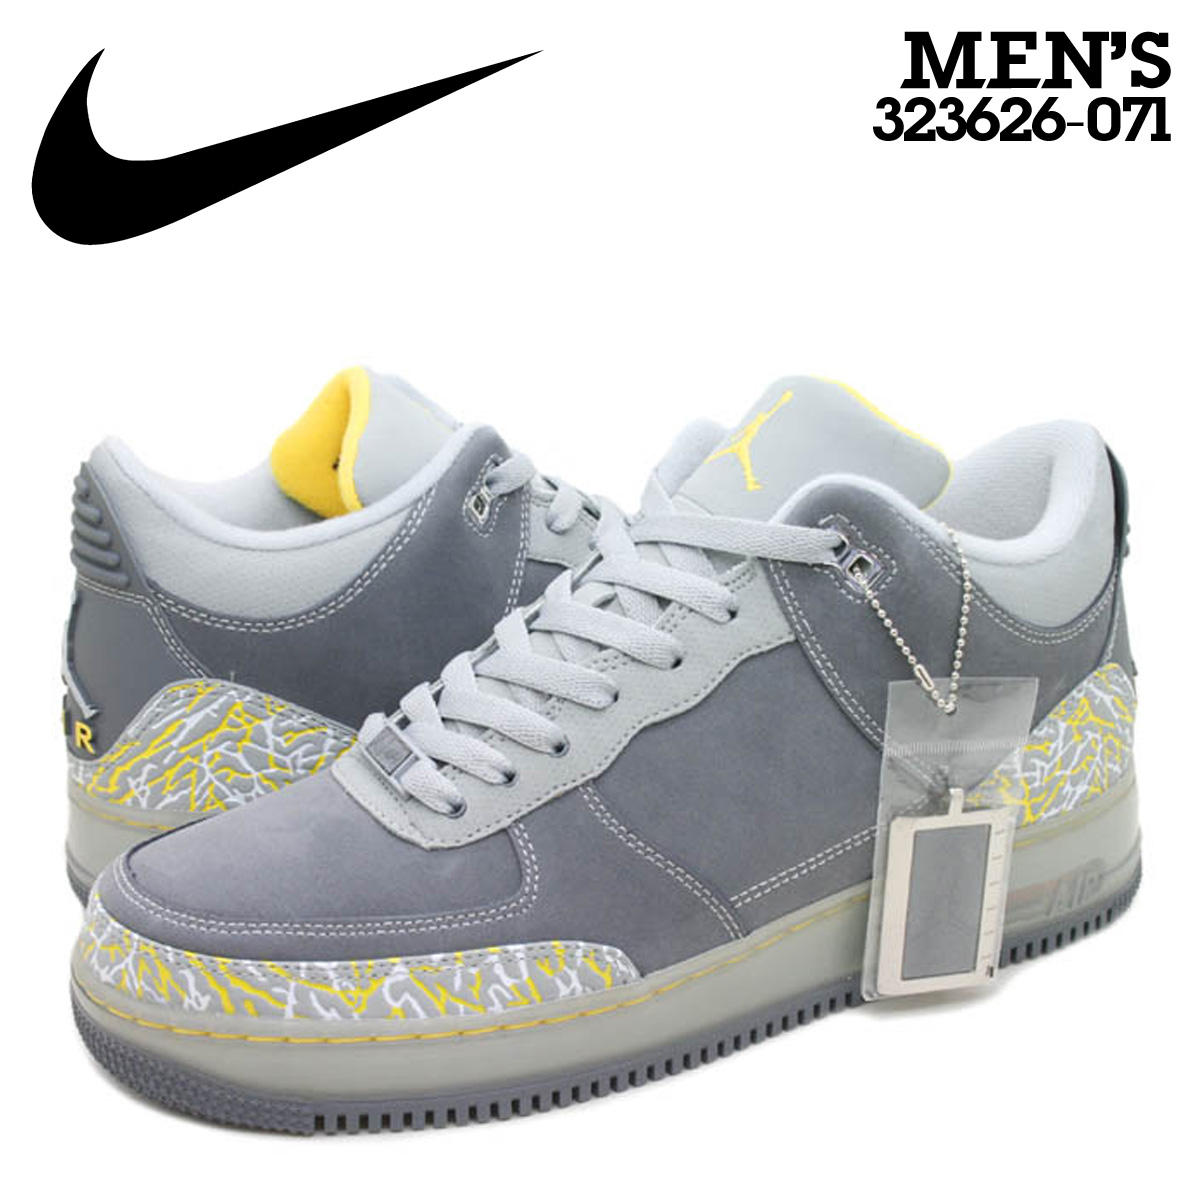 chaussures de sport 4a8d7 65163 Nike NIKE Air Jordan sneakers AIR JORDAN FUSION 3 AF1 & AJ3 AJF air force  Fusion 3 323626-071 grey men